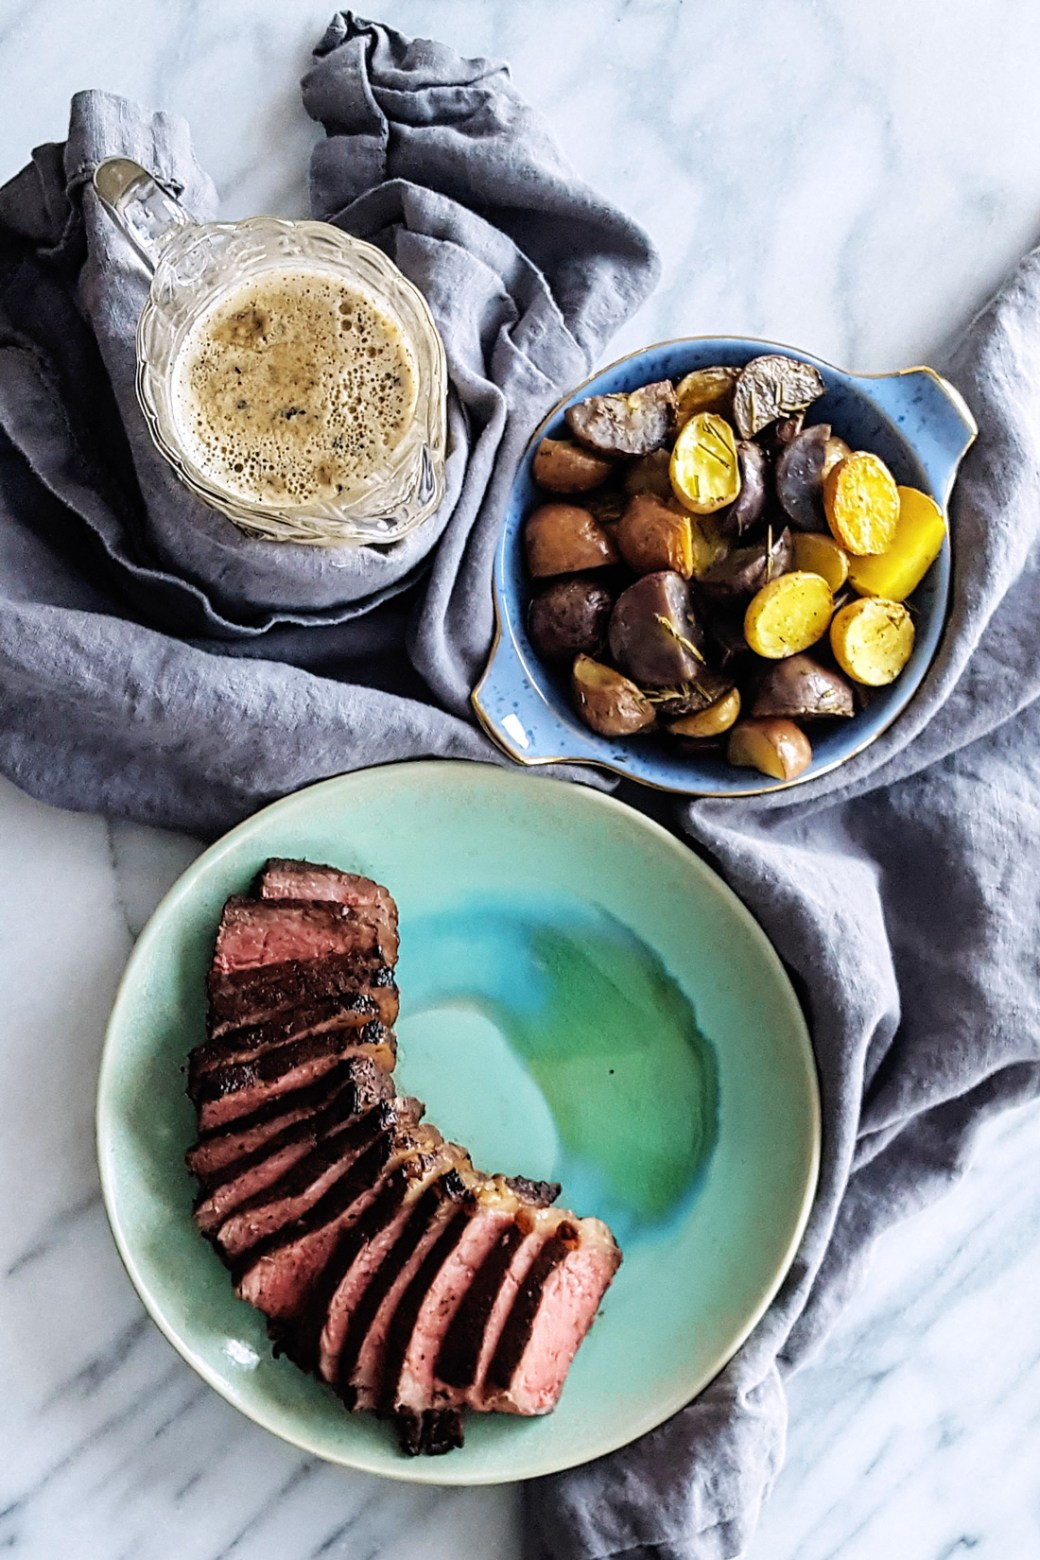 Get ready for a simple & decadent dinner with this Coffee & Cocoa Rubbed Steak in Peppercorn Bourbon Cream Sauce. #datenightin #valentinesday #dinnerdate #steakdinner | FeastInThyme.com